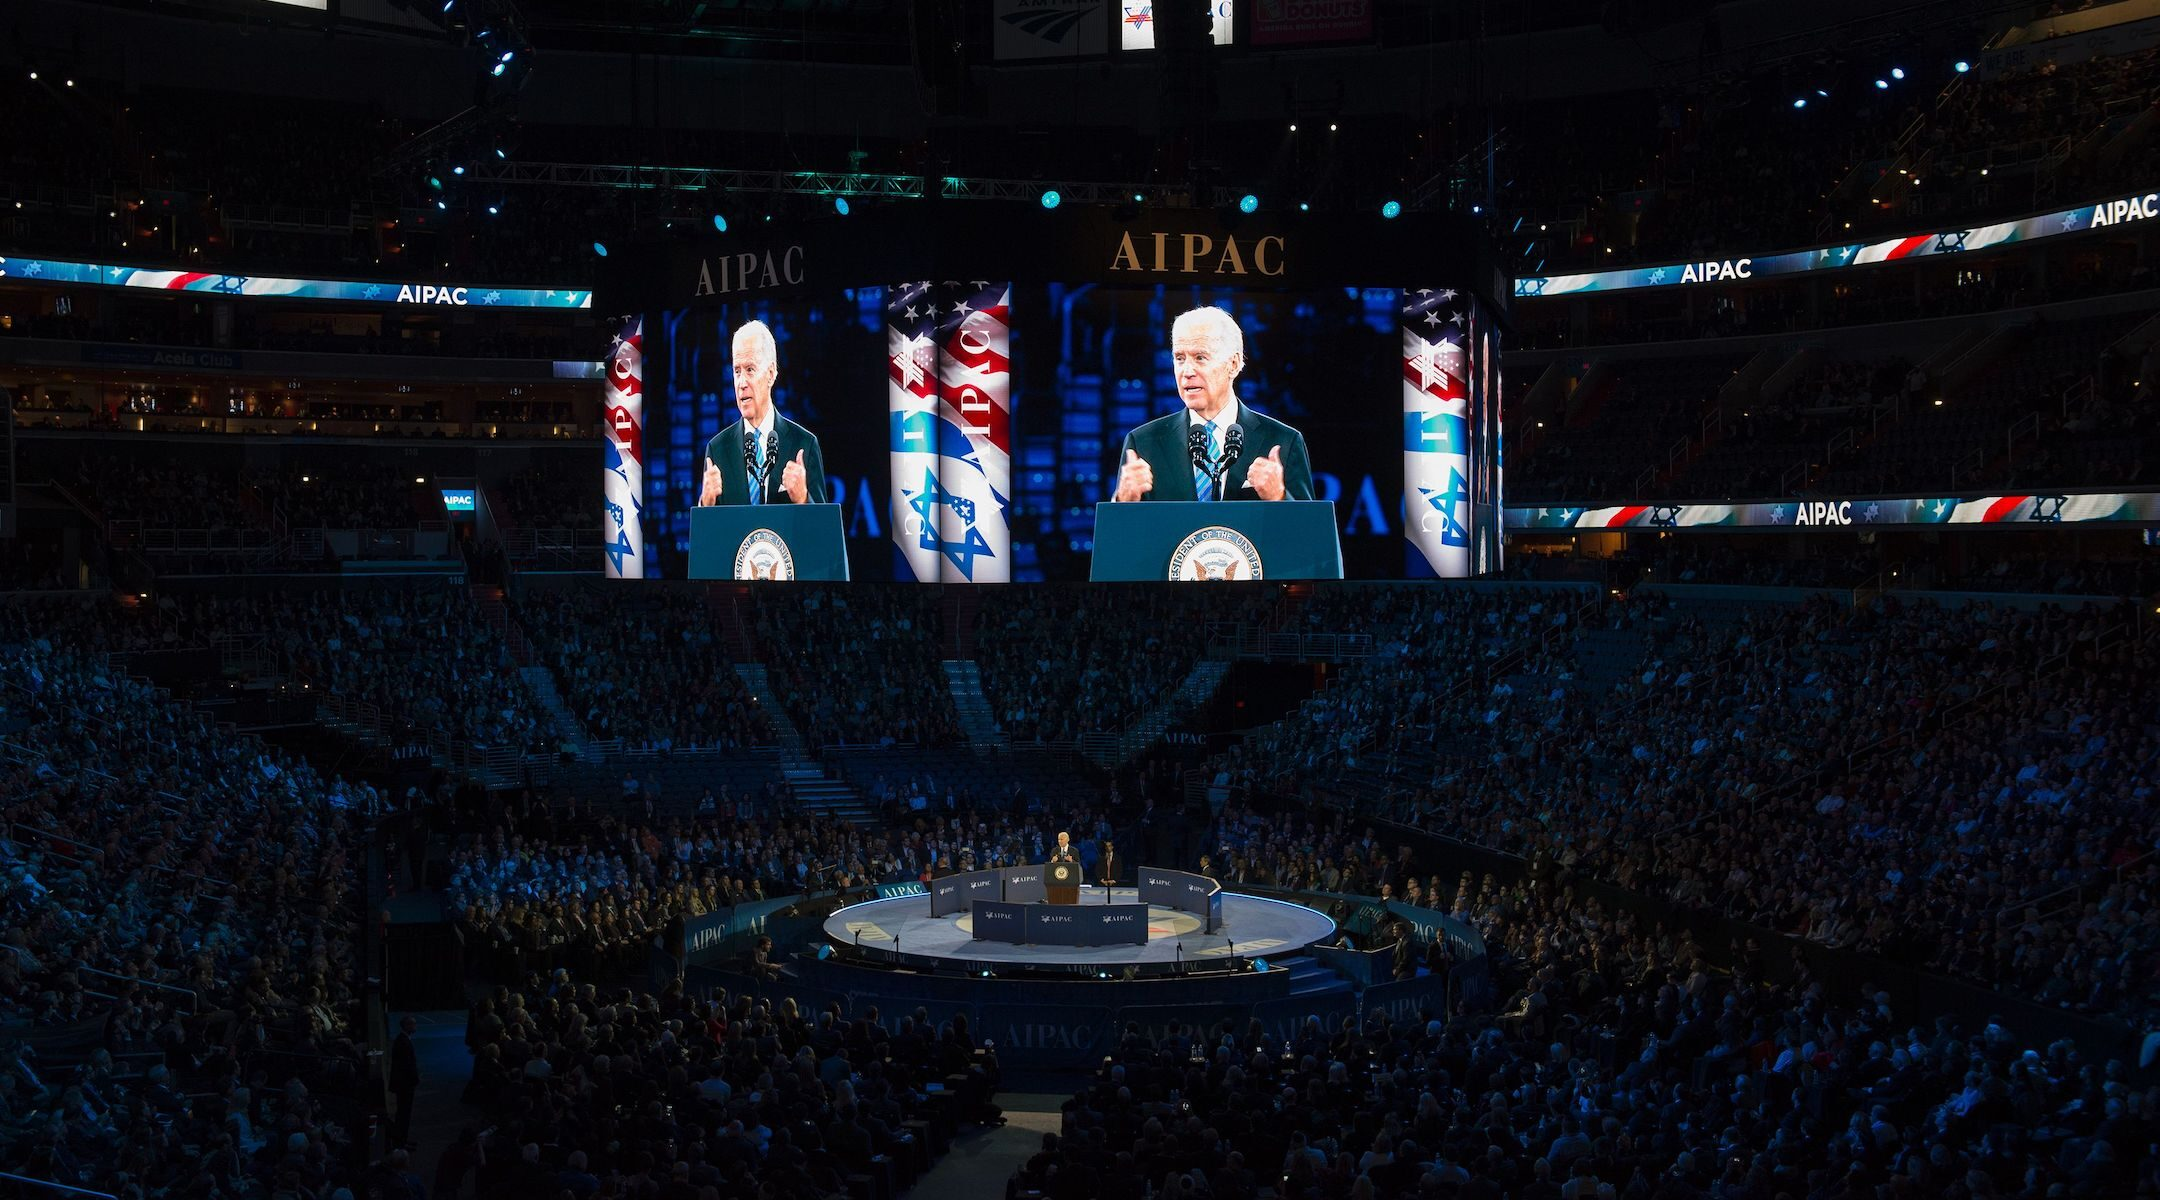 Joe Biden, then vice president, speaks at the AIPAC 2016 Policy Conference on March 20, 2016 in Washington, DC. (Molly Riley/AFP via Getty Images)